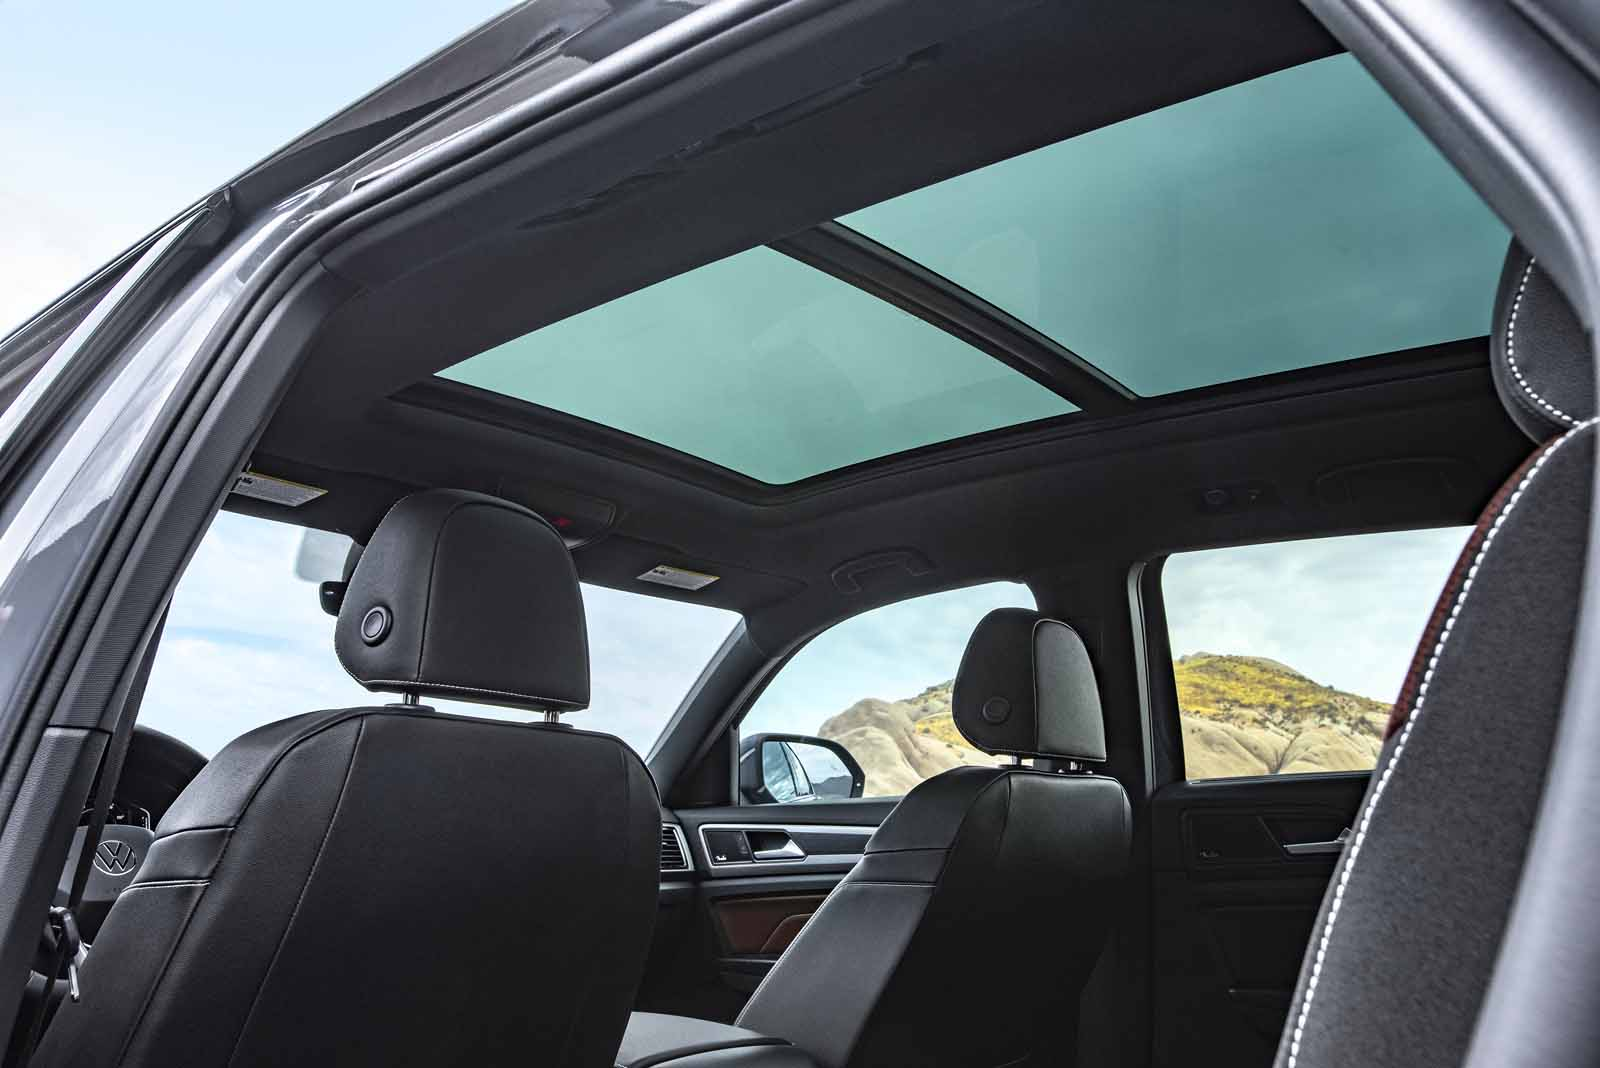 SUNROOF_BSUV-5_0208_w3